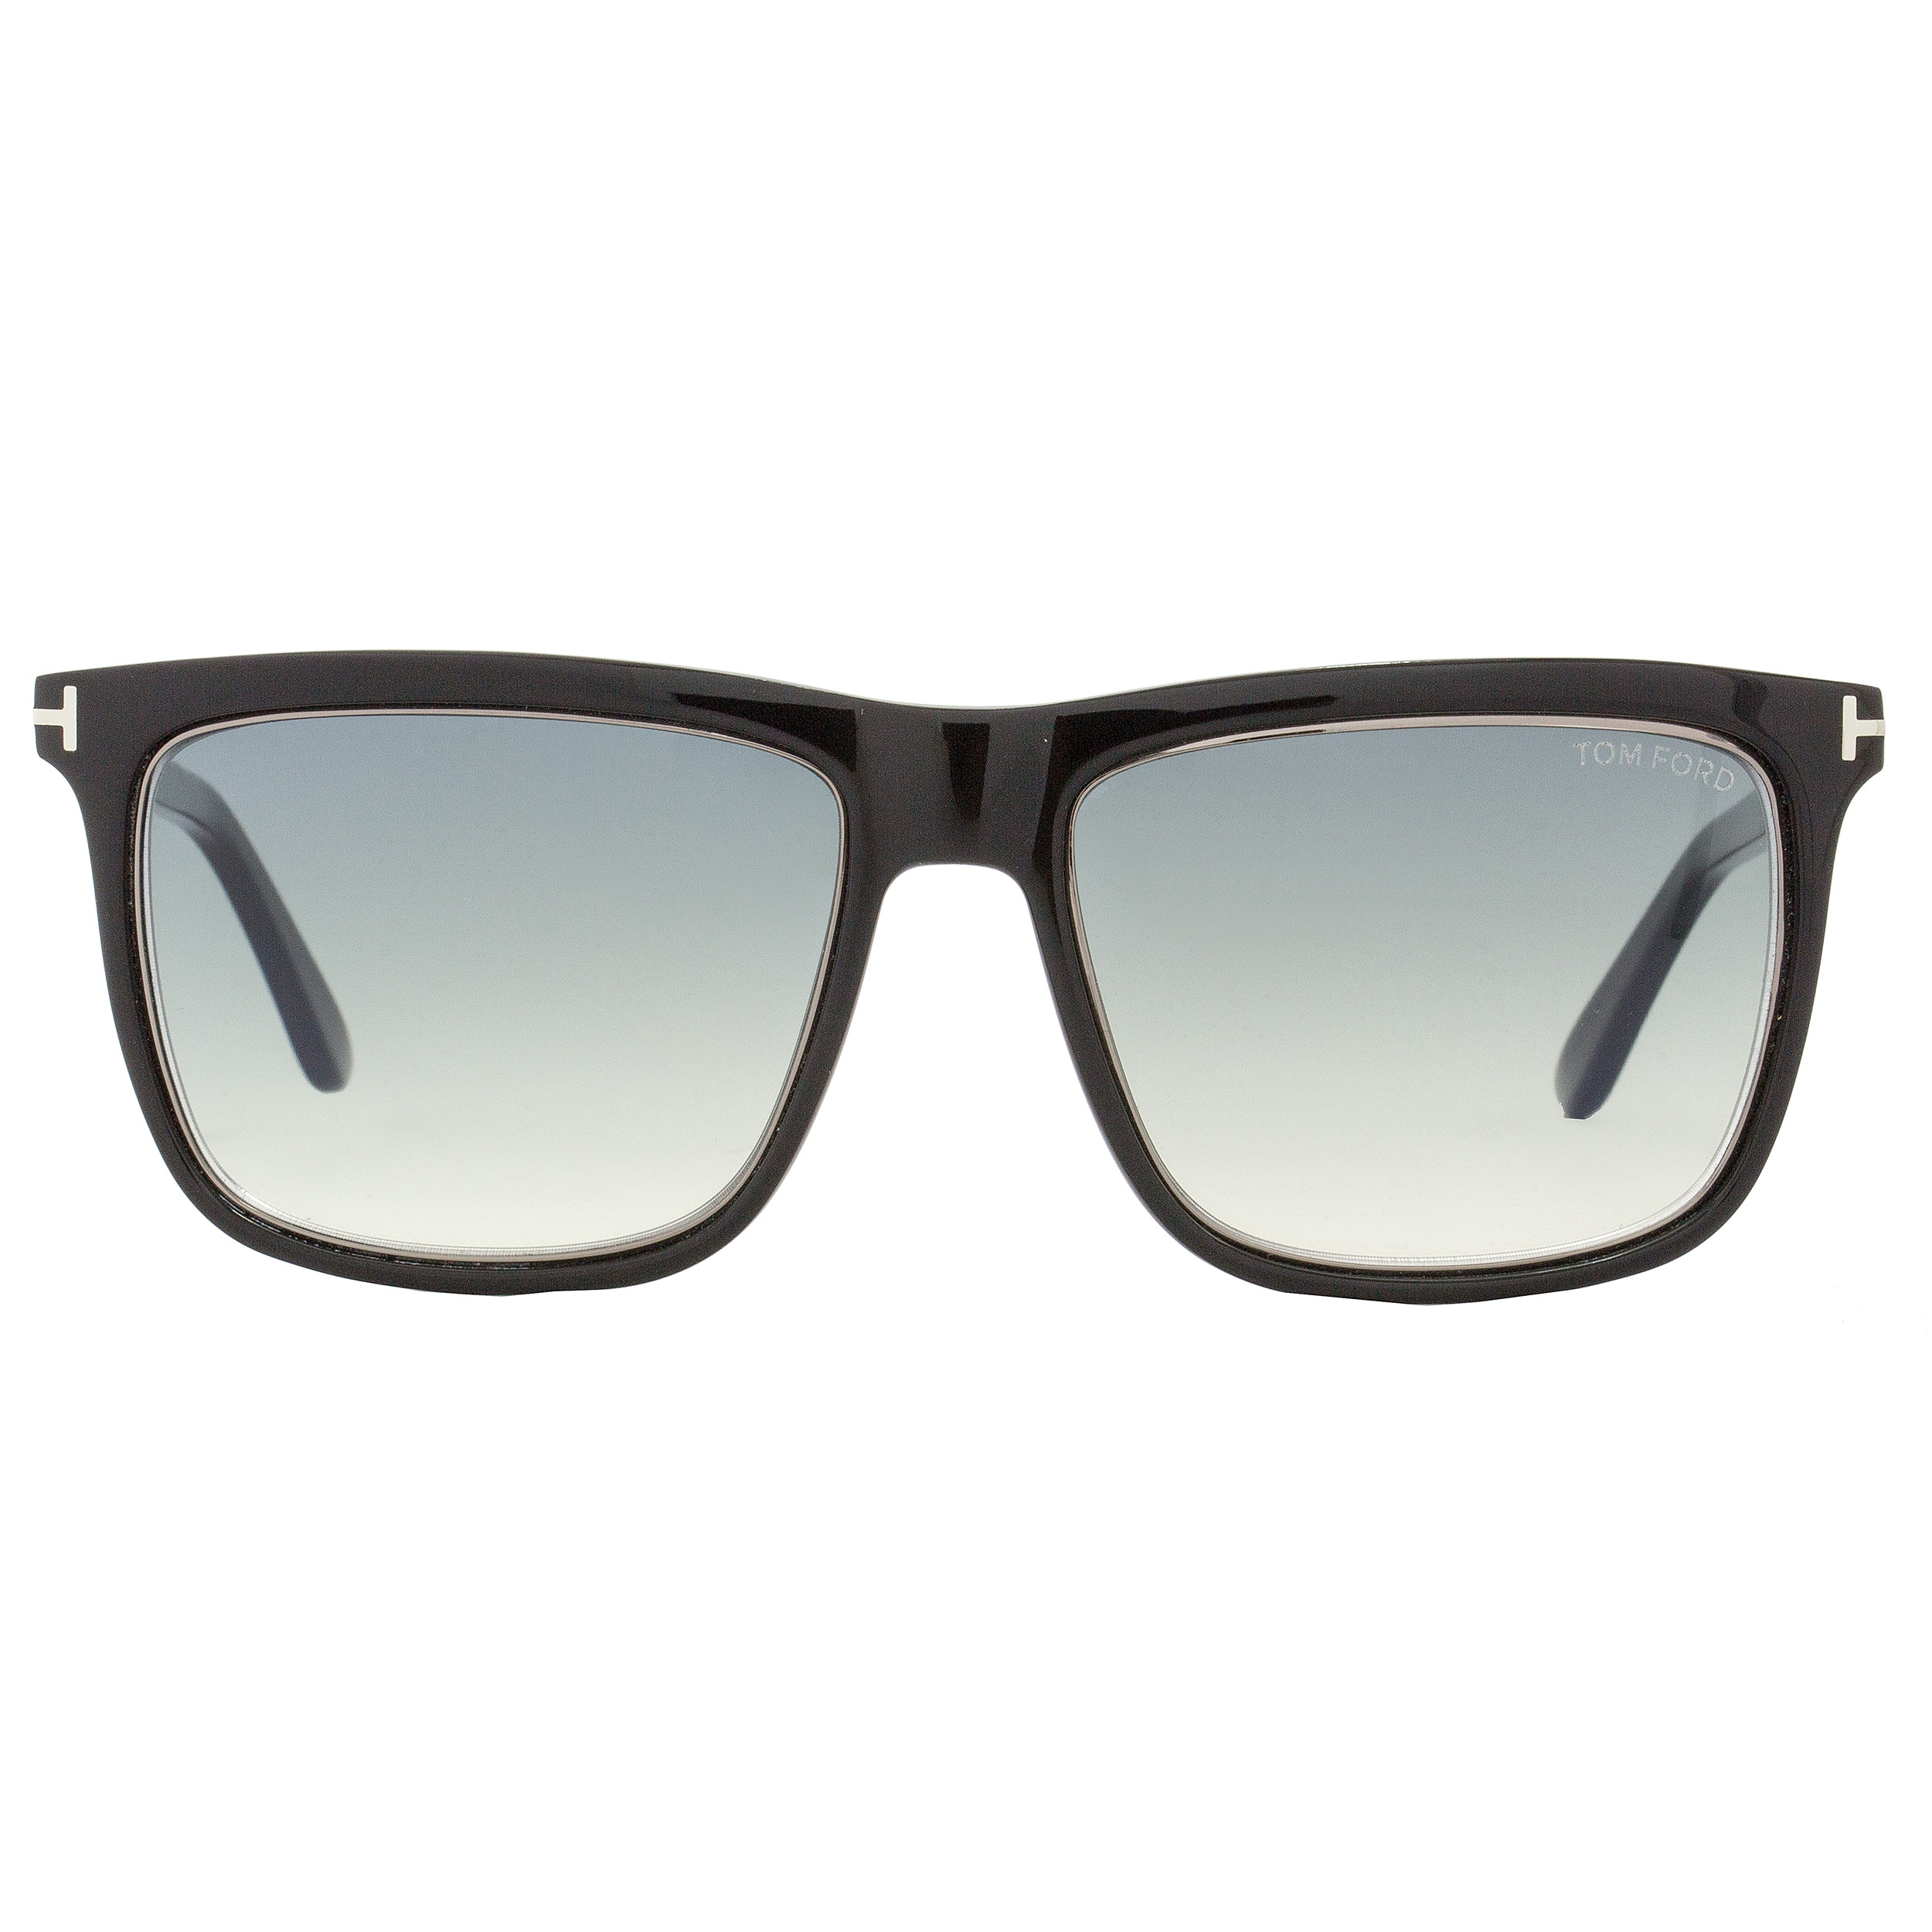 aee956c349 Shop Tom Ford TF392 Karlie 02W Women s Shiny Black Ruthenium Gray Blue  Gradient Lens Sunglasses - Free Shipping Today - Overstock - 18153227